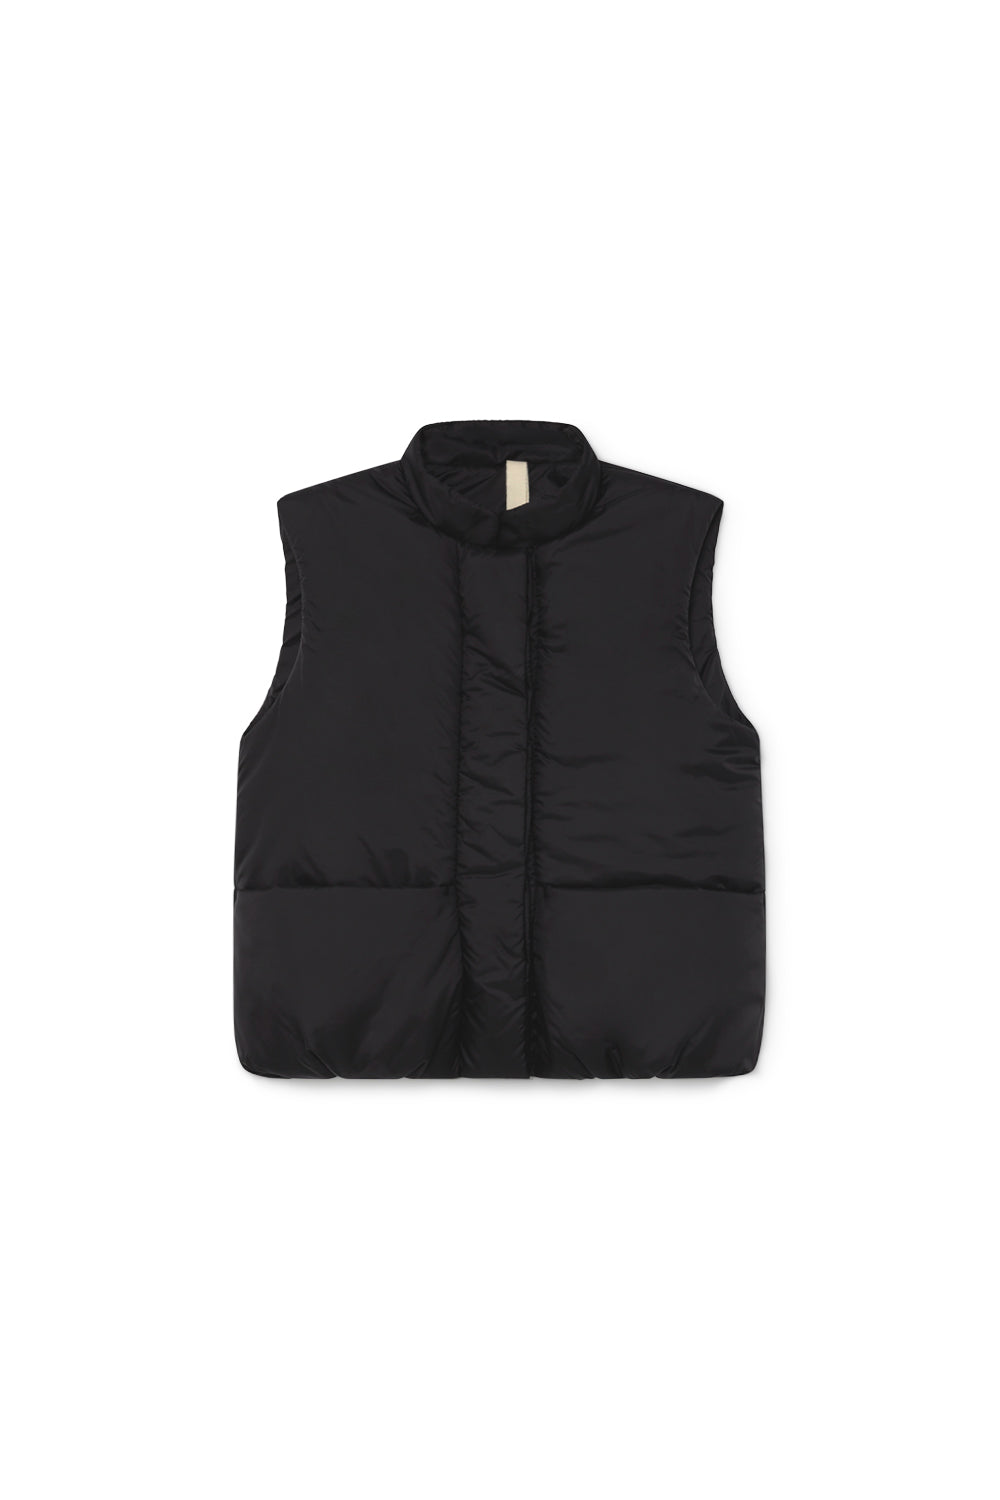 Little Creative Factory Unexpected Vest - Black